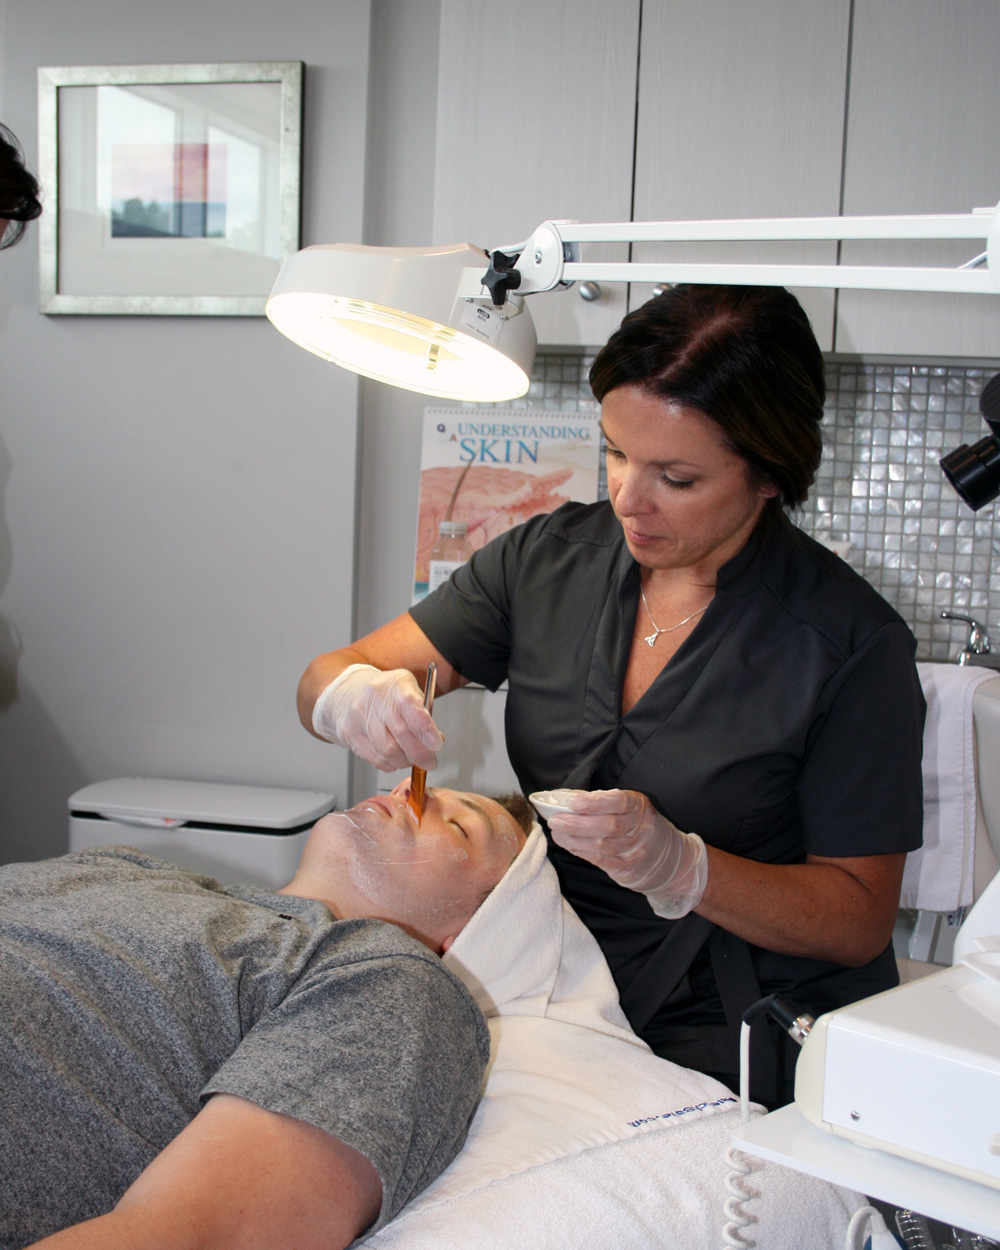 Master Aesthetician Debra applying product on facial client